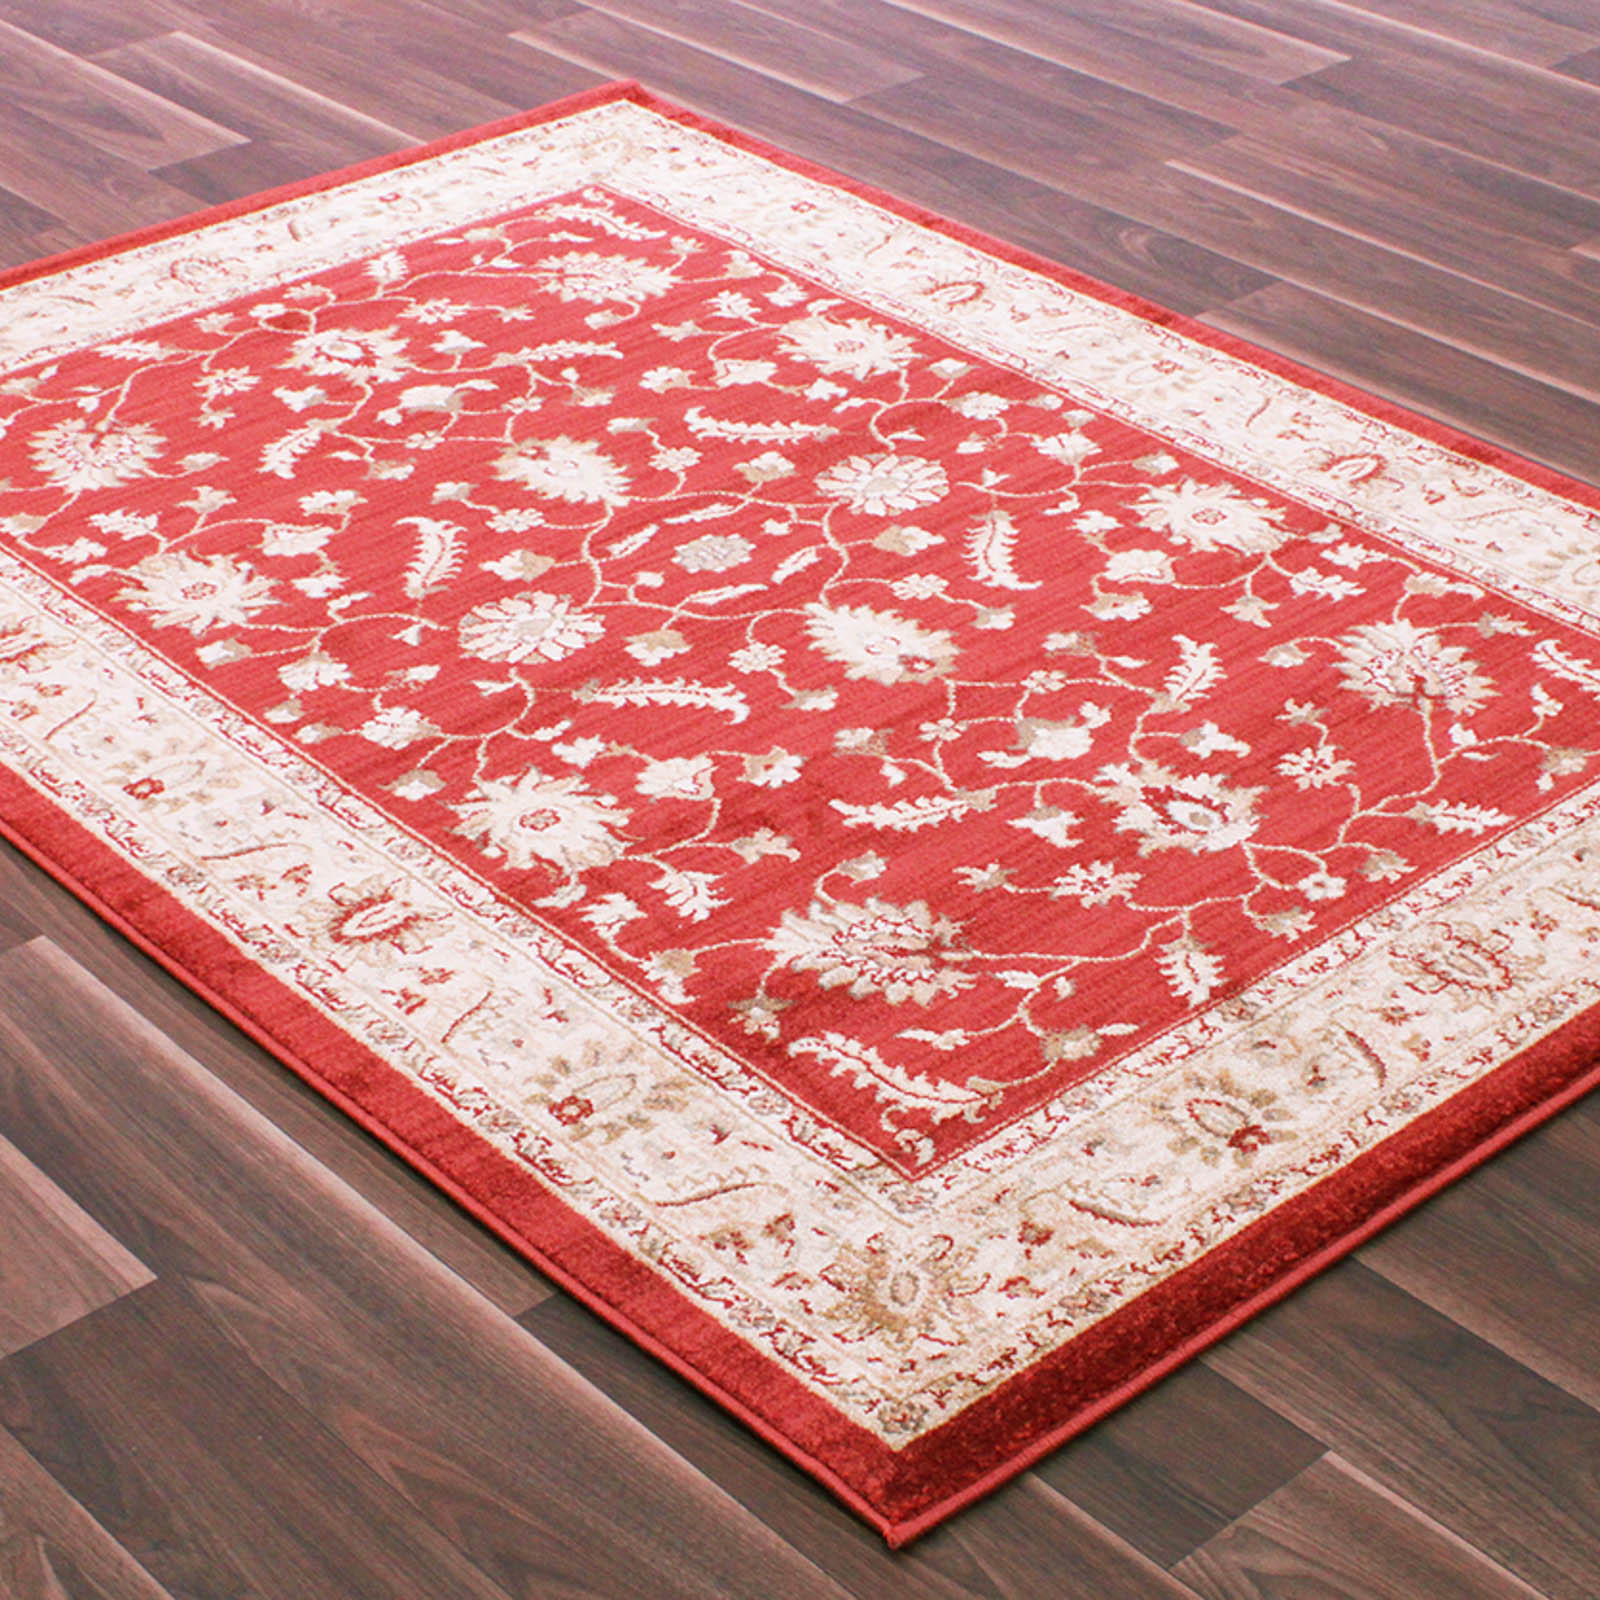 Vintage Traditional Rugs 7982 in Red